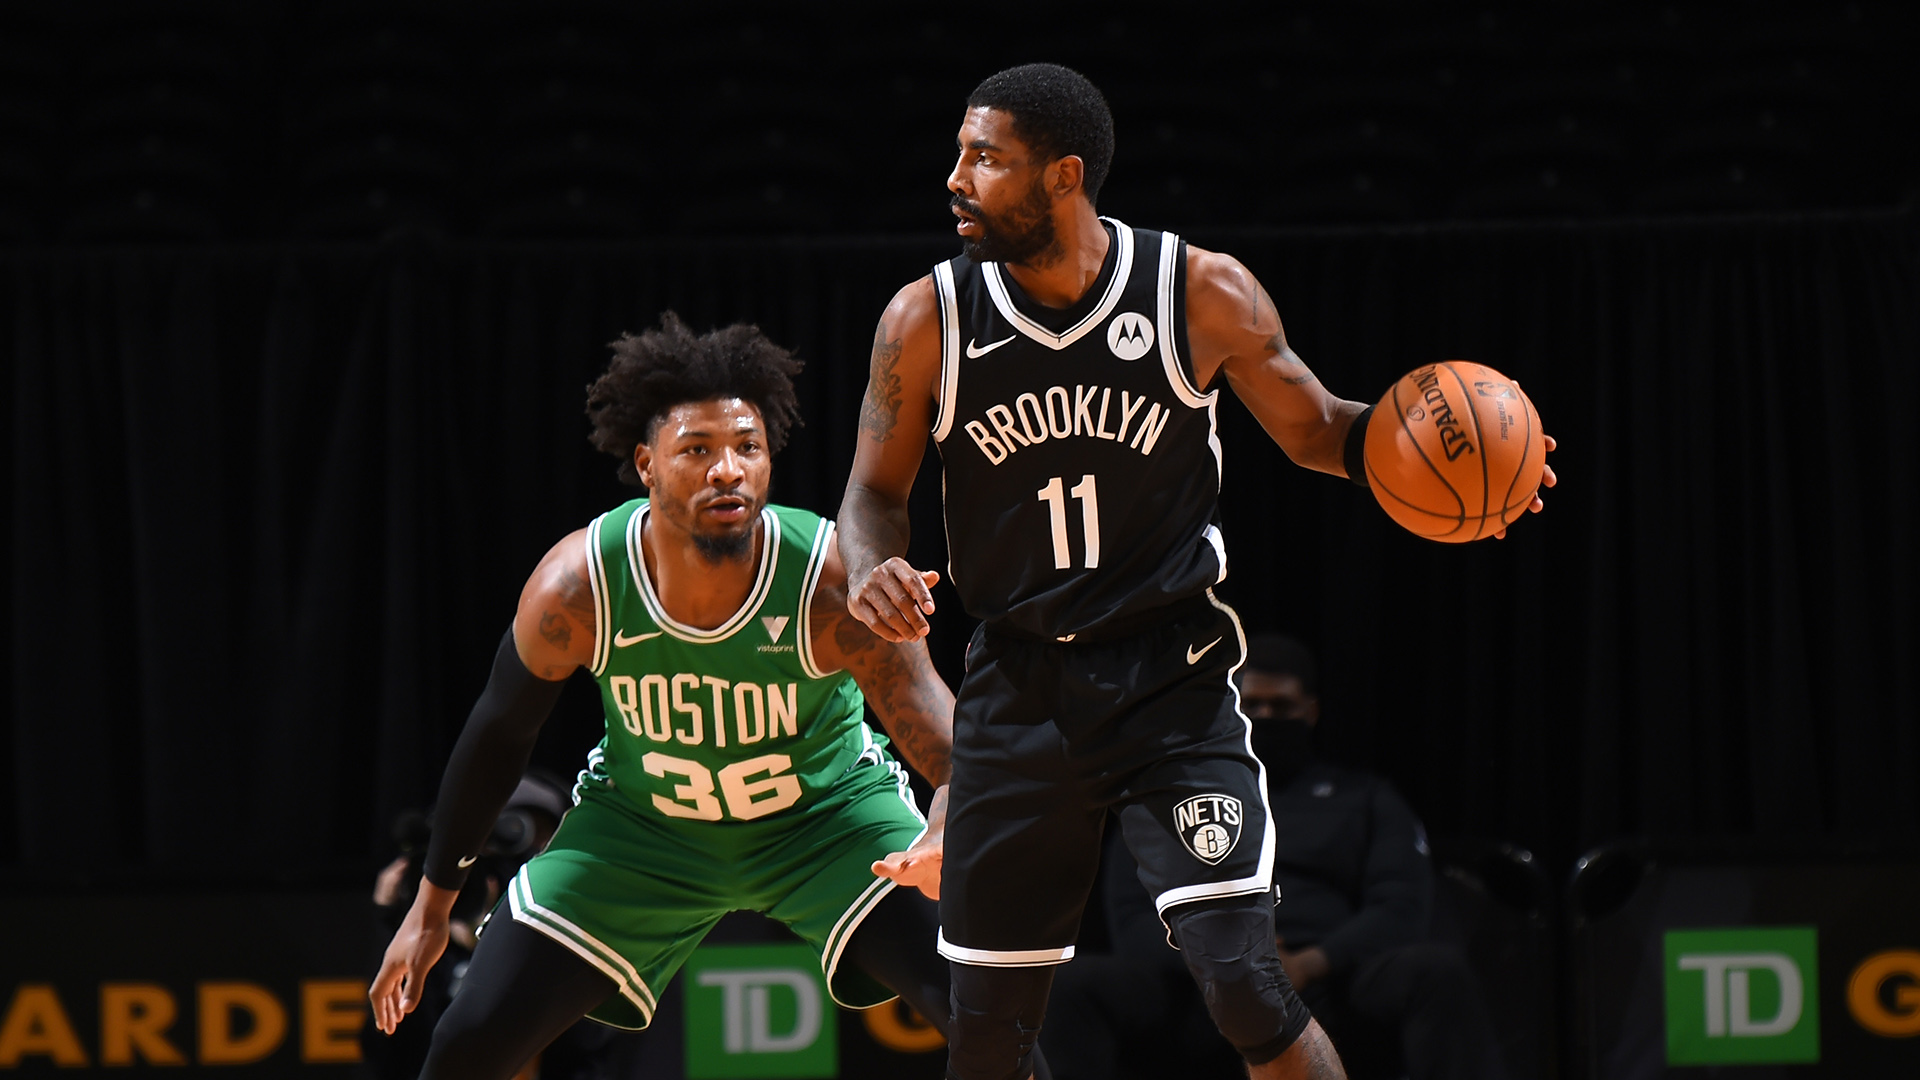 Kyrie Irving cleanses court in return to Boston